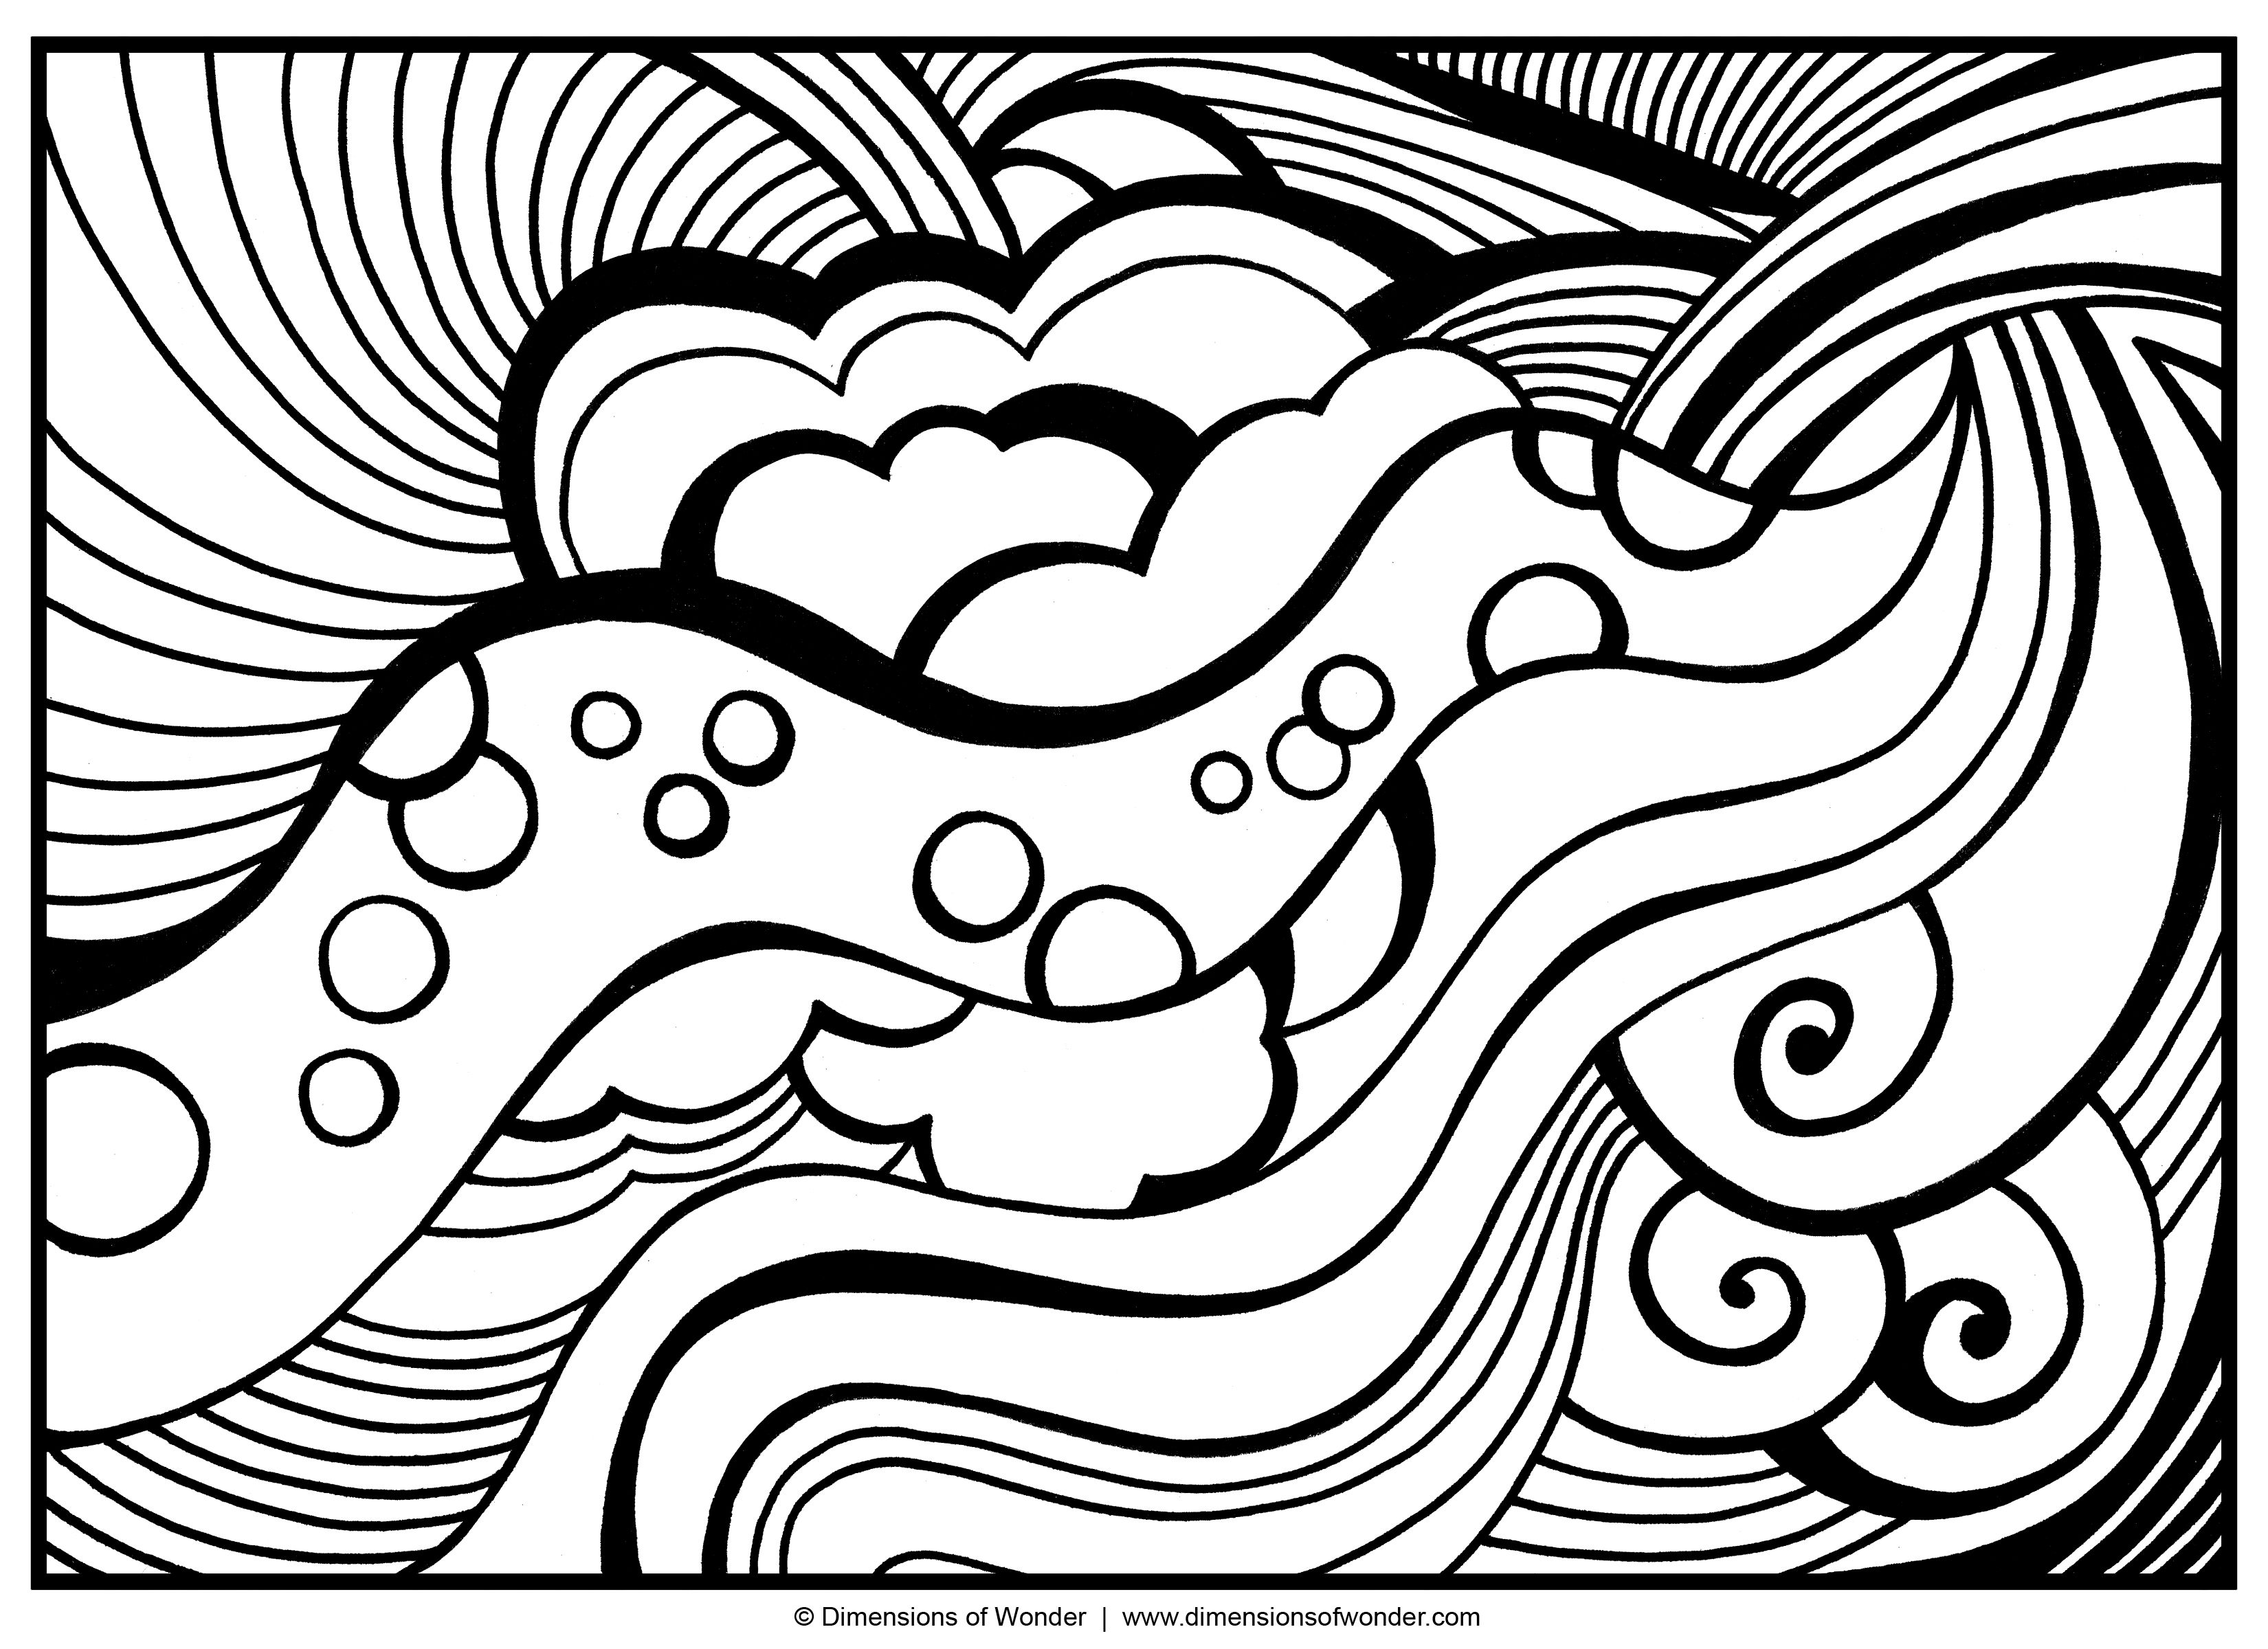 large coloring pages large flowers coloring pages to download and print for free large pages coloring